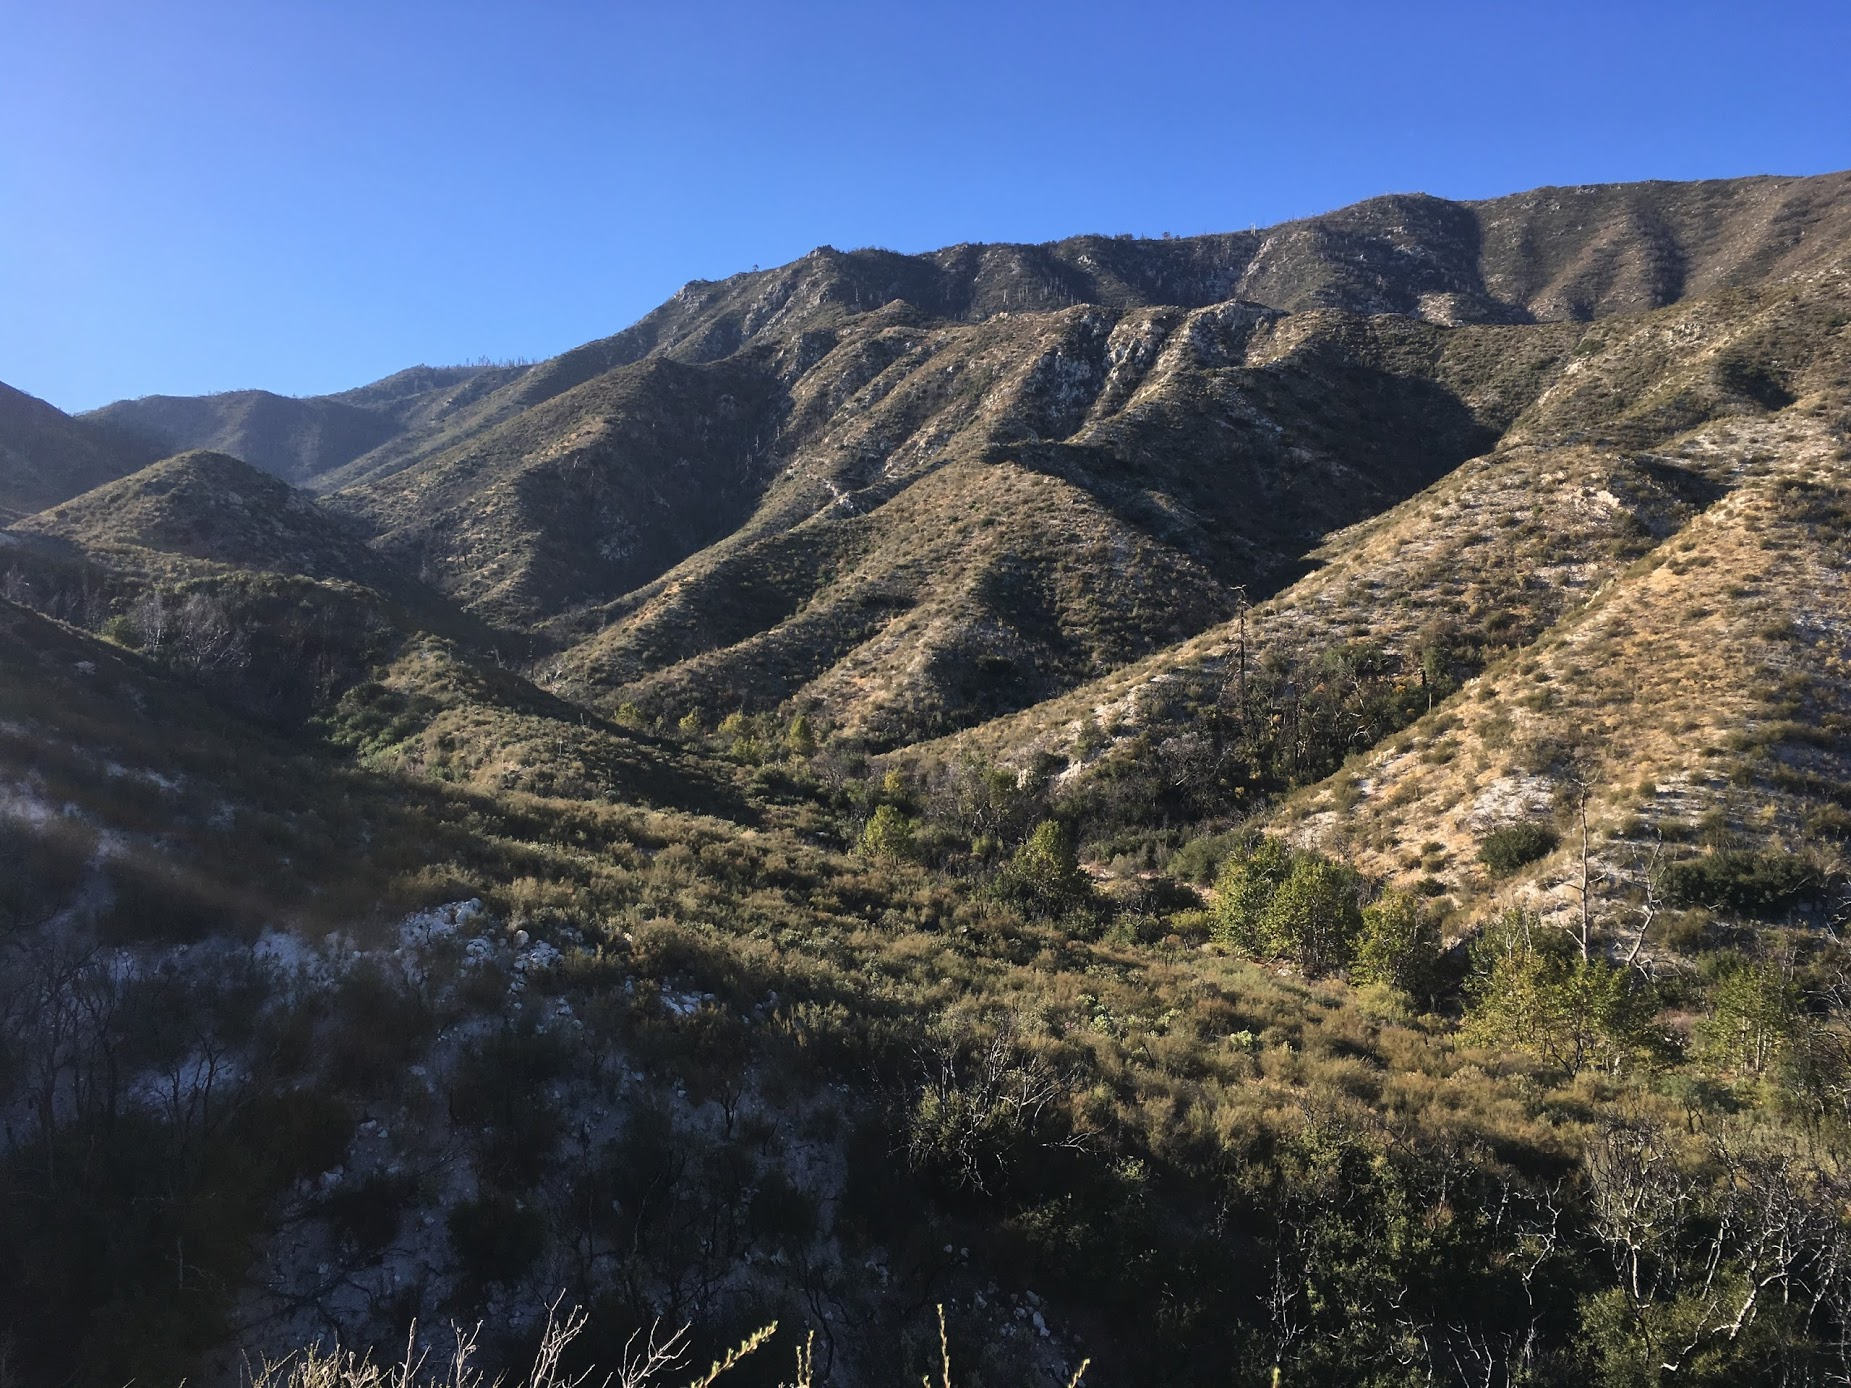 The back of the canyon in Angeles National Forest